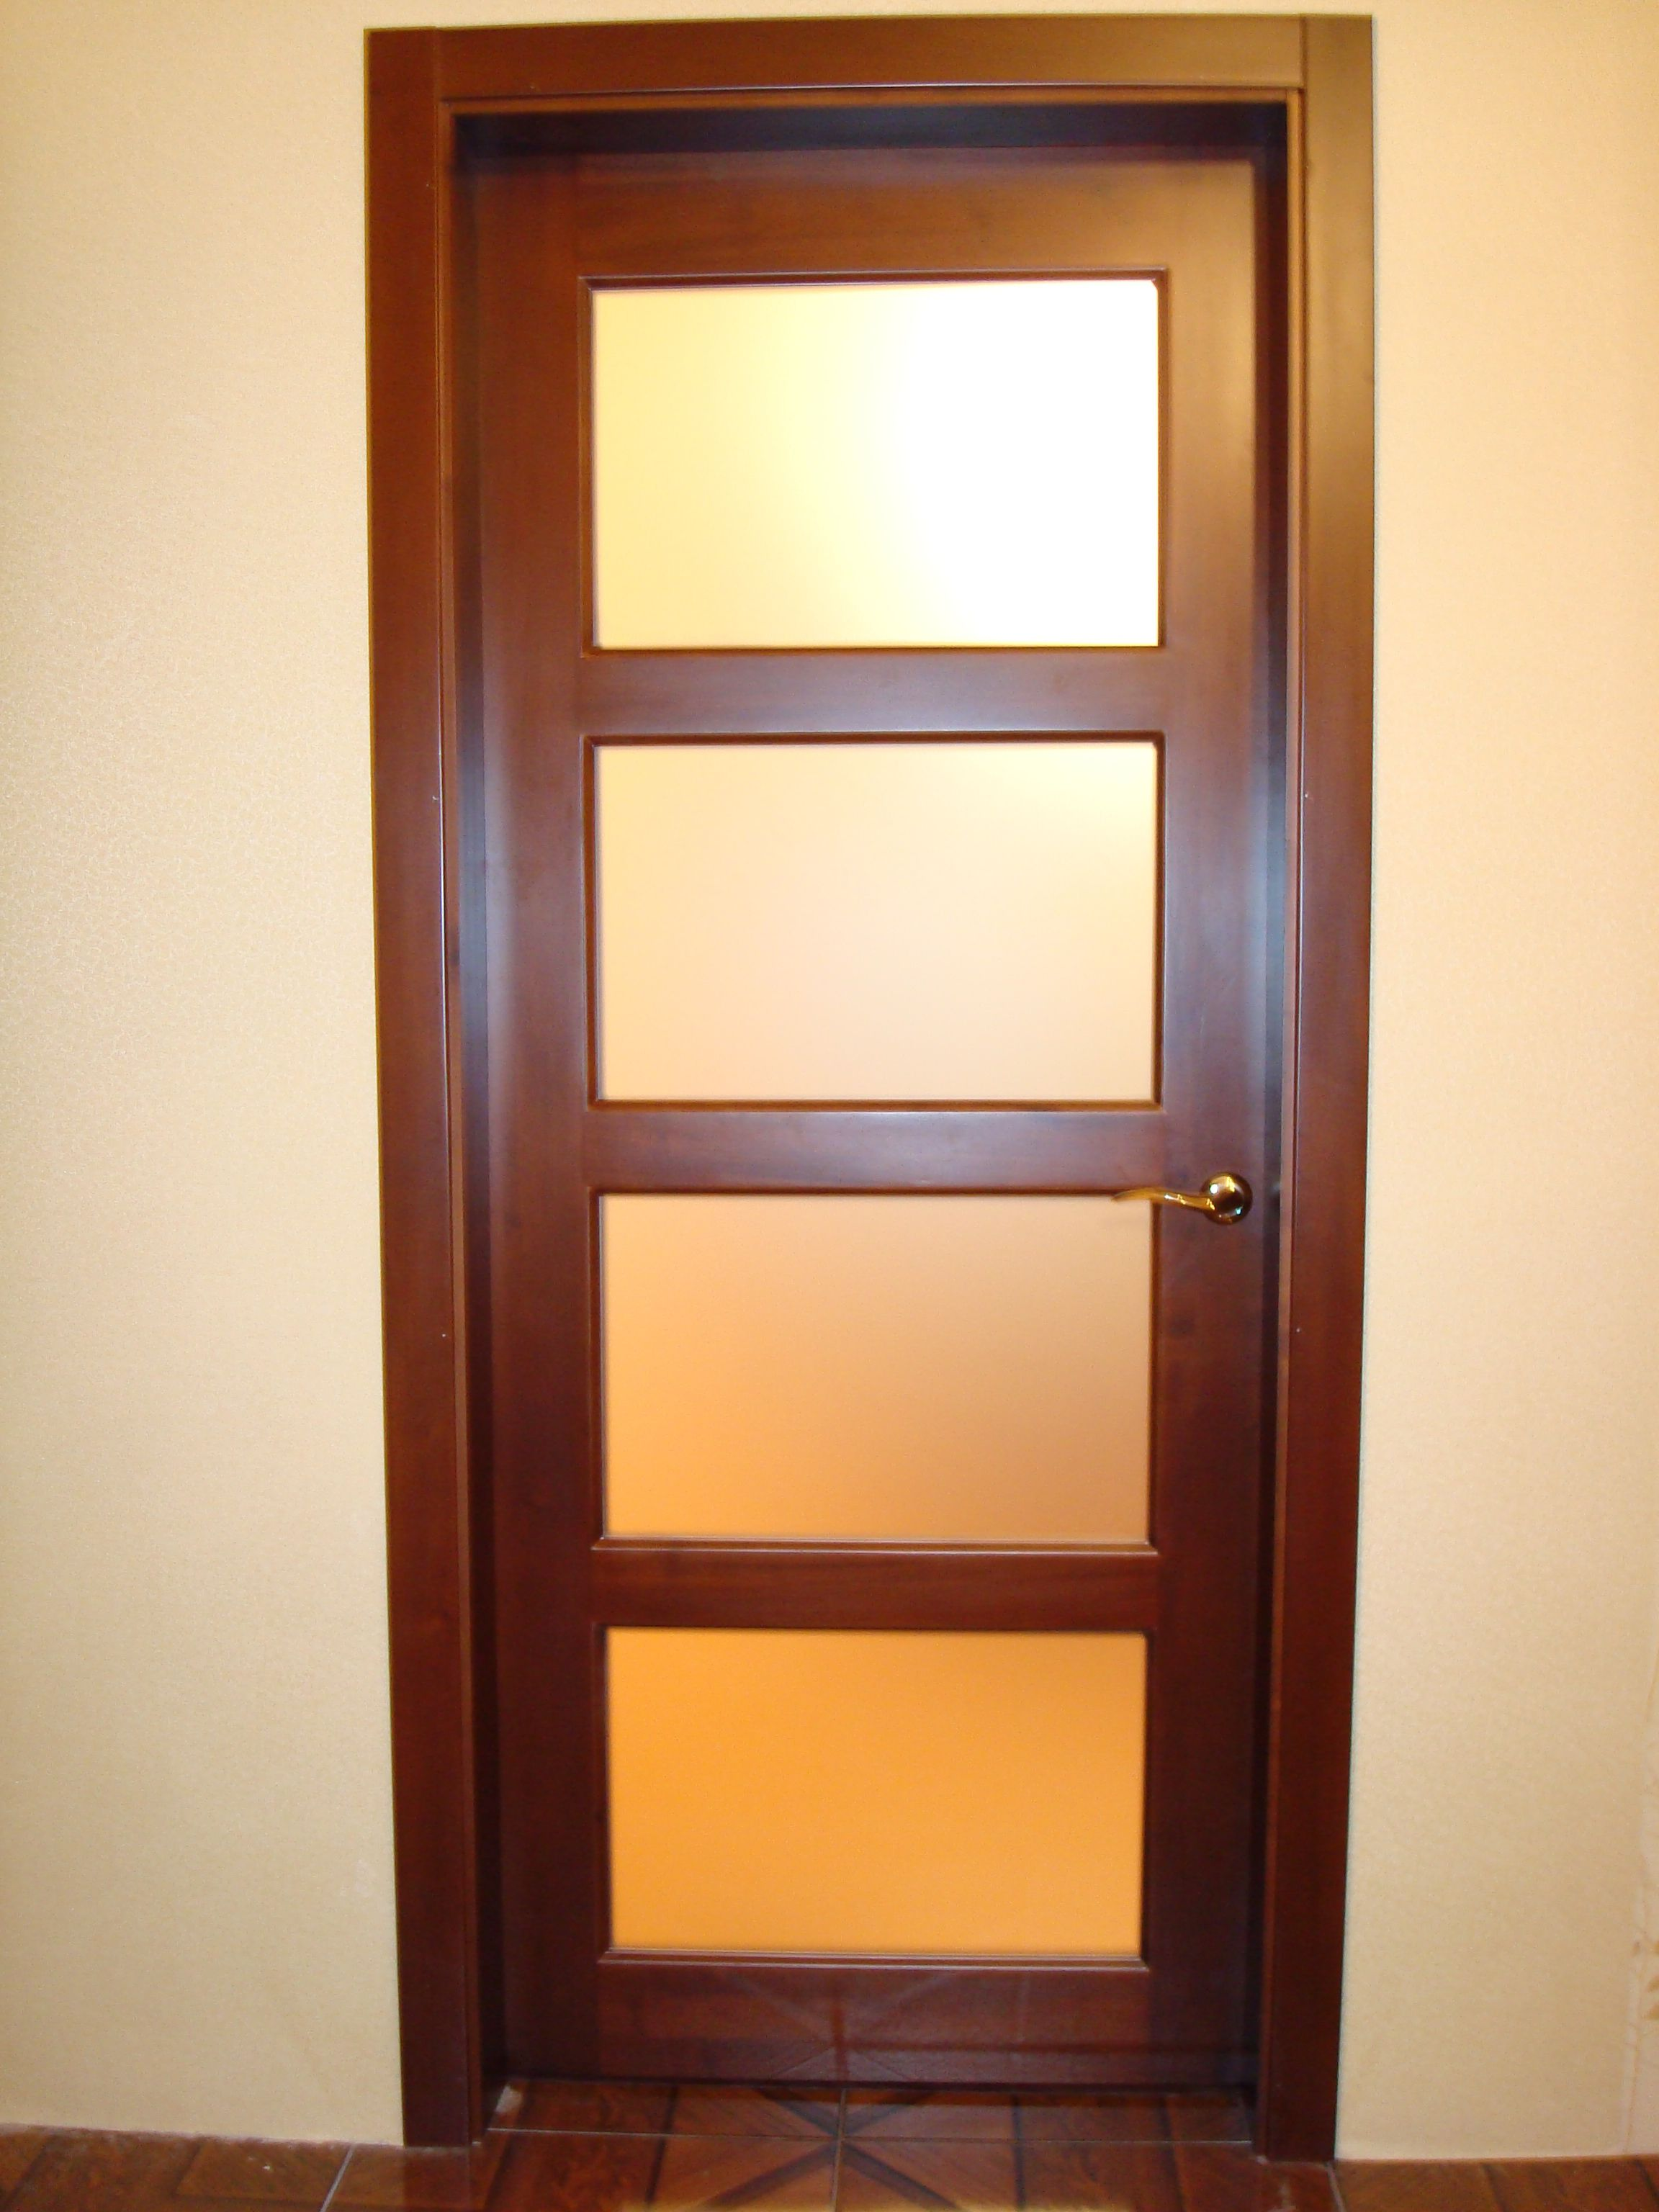 Woodn doors wooden doors in sri lanka wooden doors in for Internal wooden doors